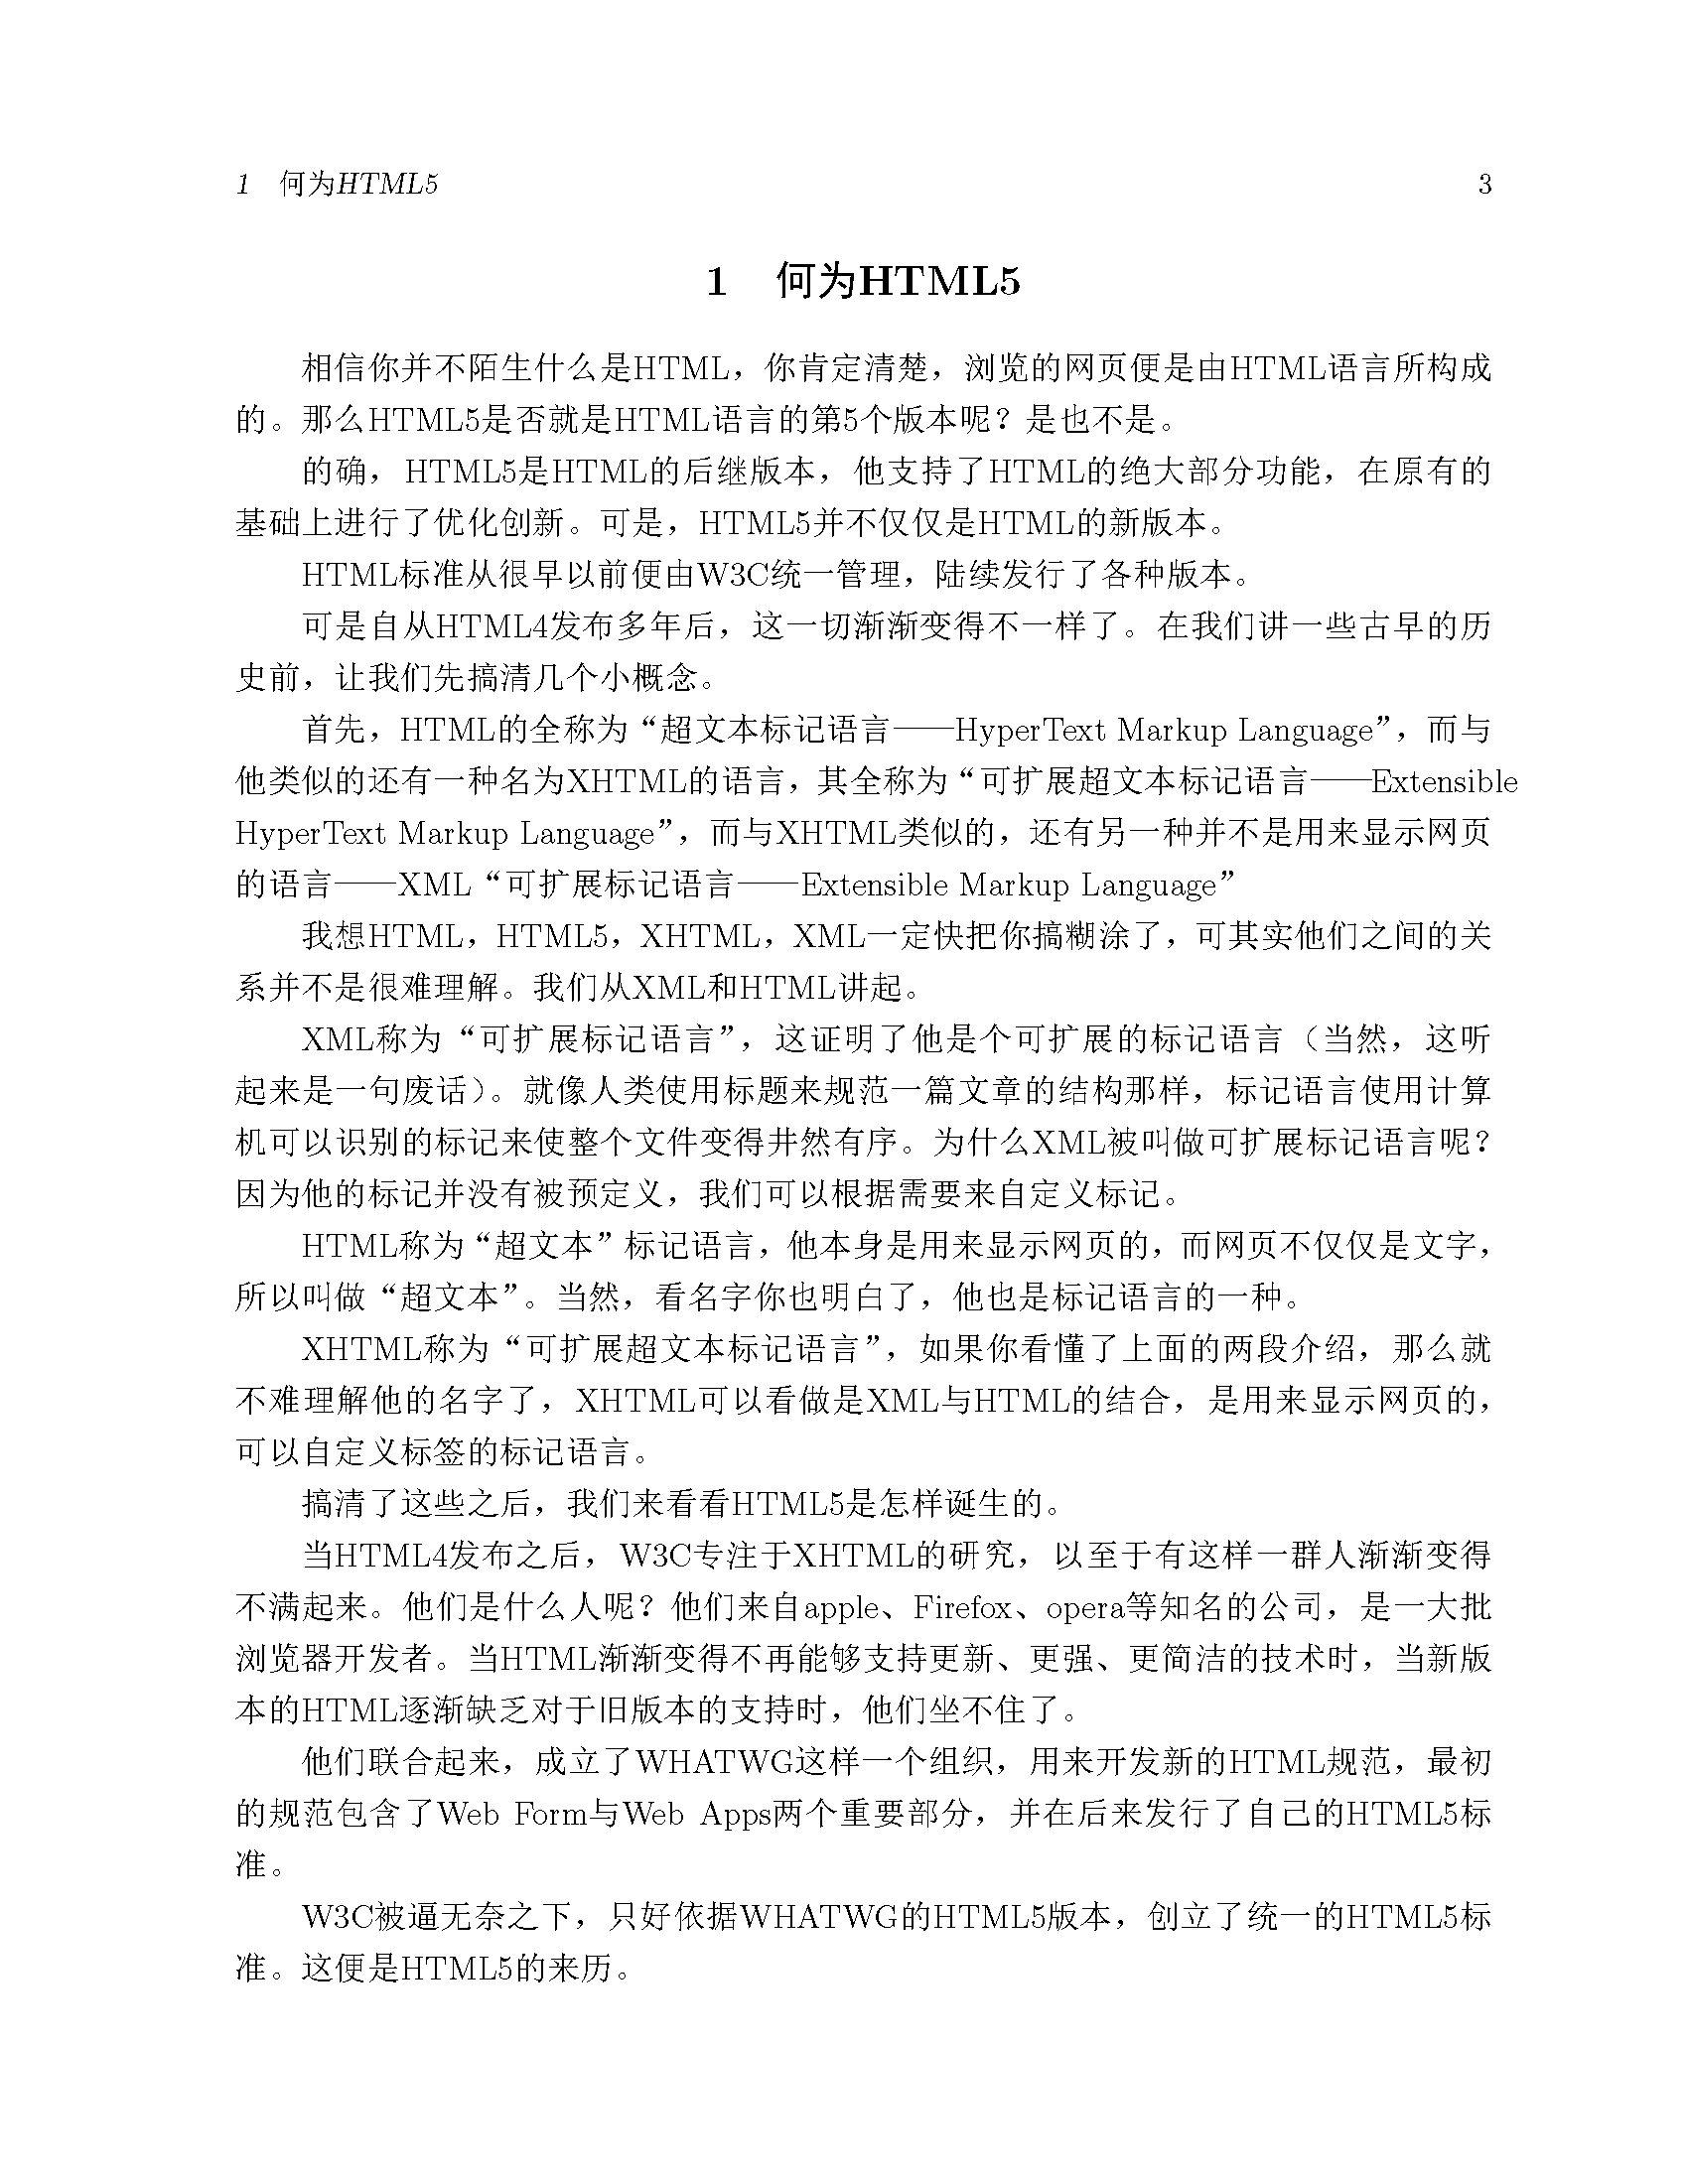 HTML5与CSS3_页面_03.png